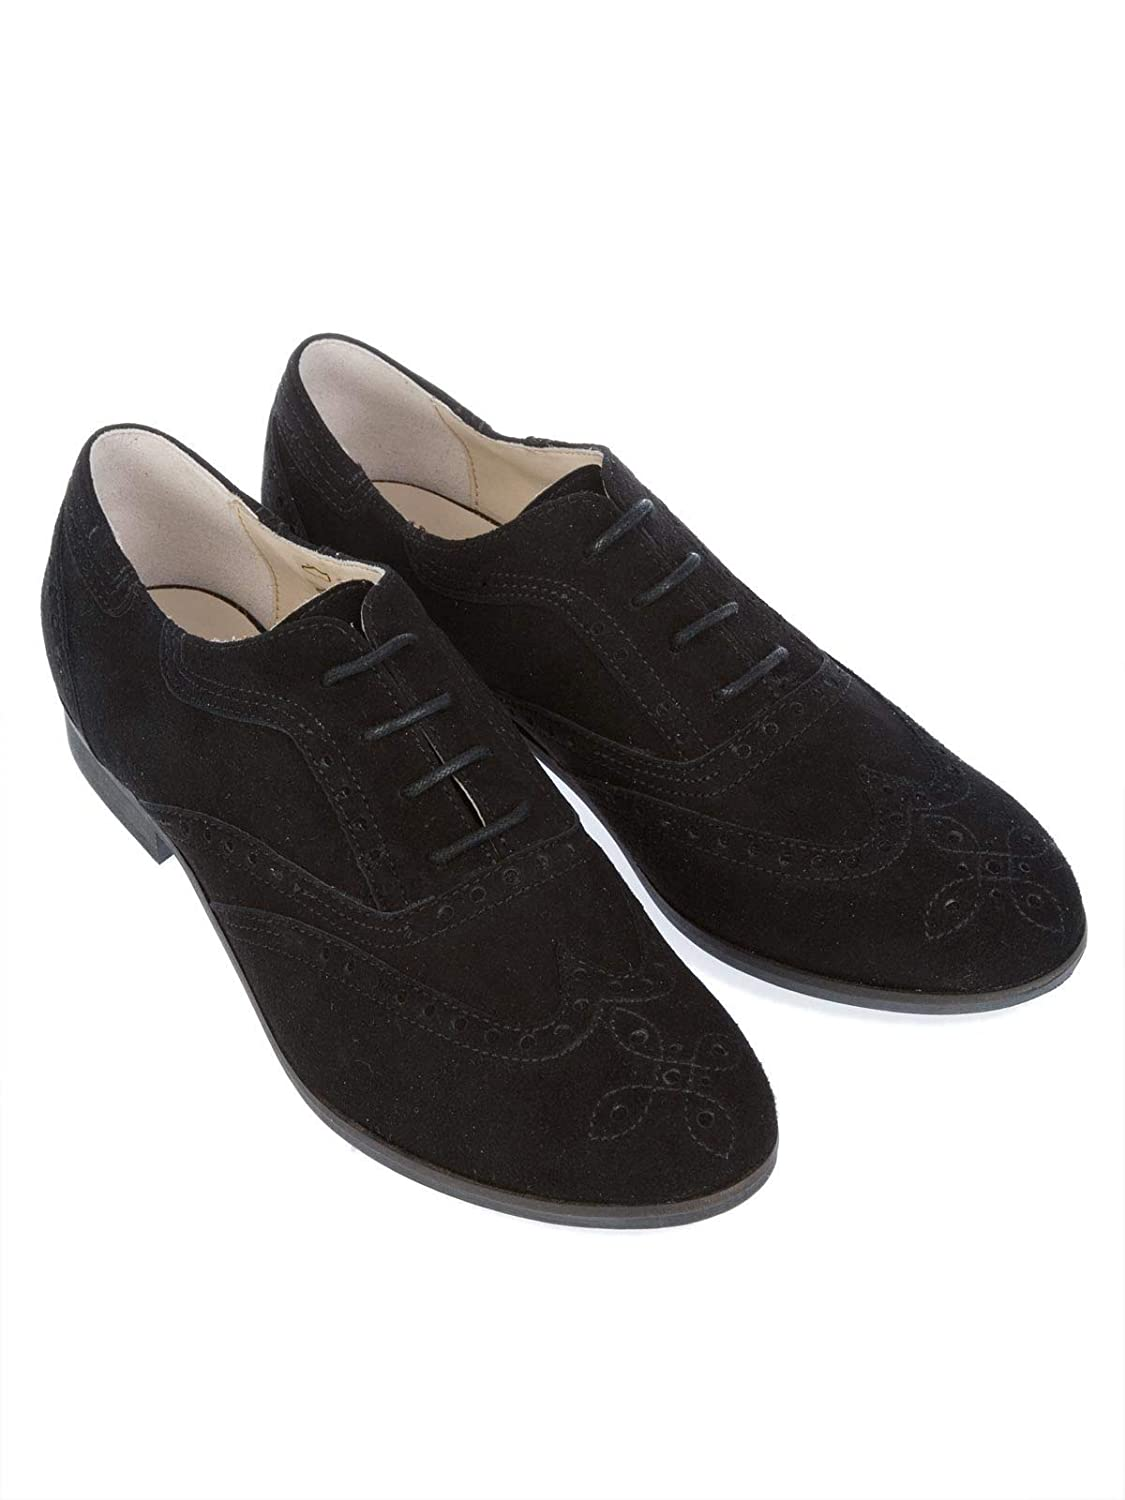 PEPEROSA Womens N7101NERO Black Suede Lace-Up Shoes